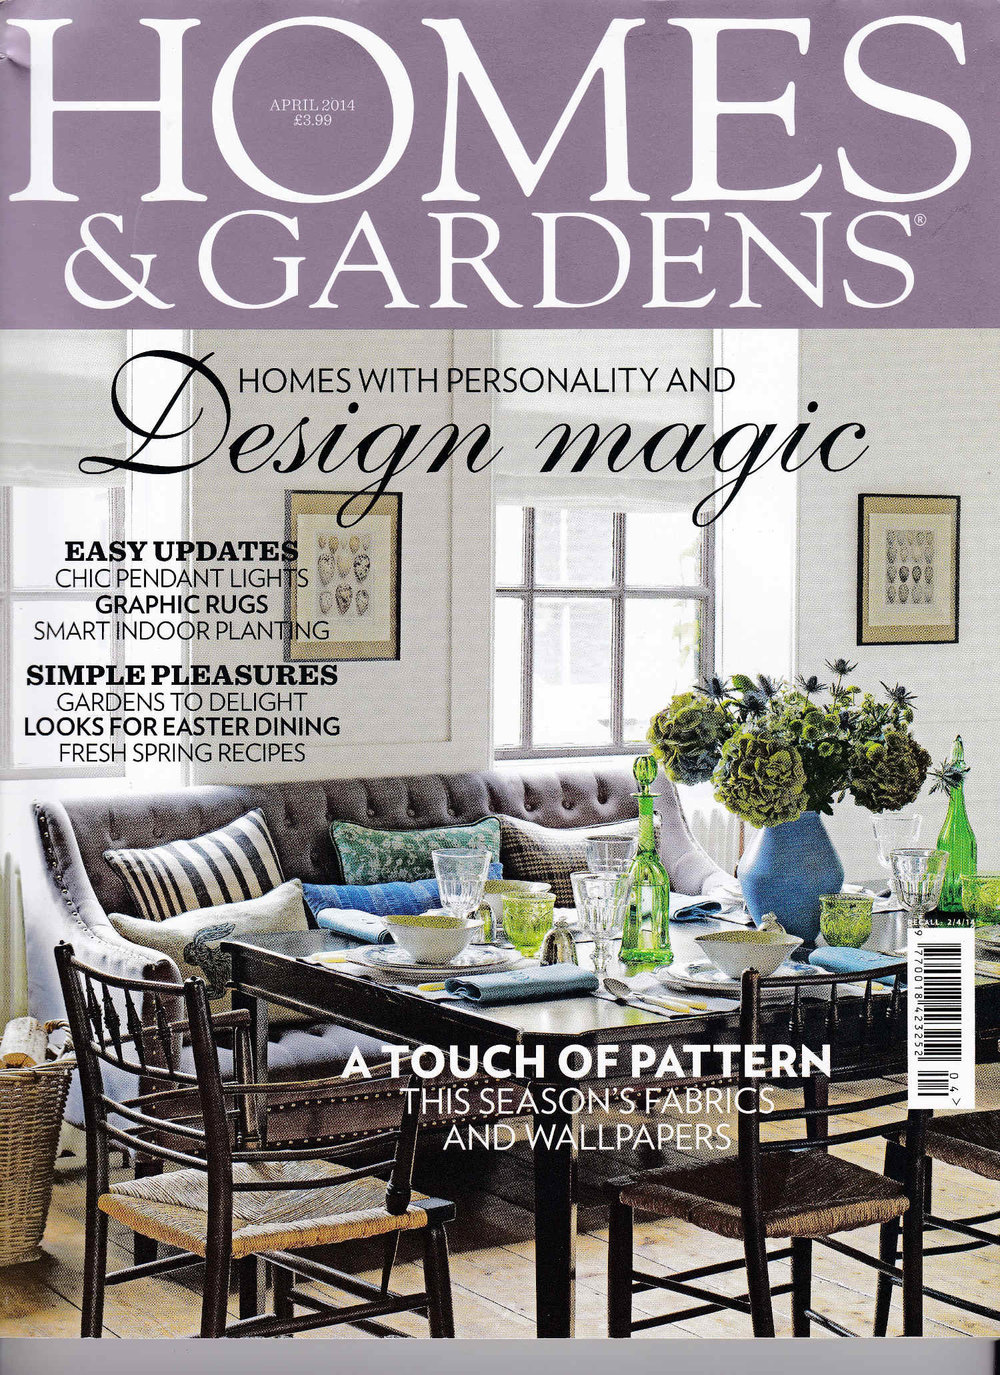 Homes and Gardens Cover.jpg